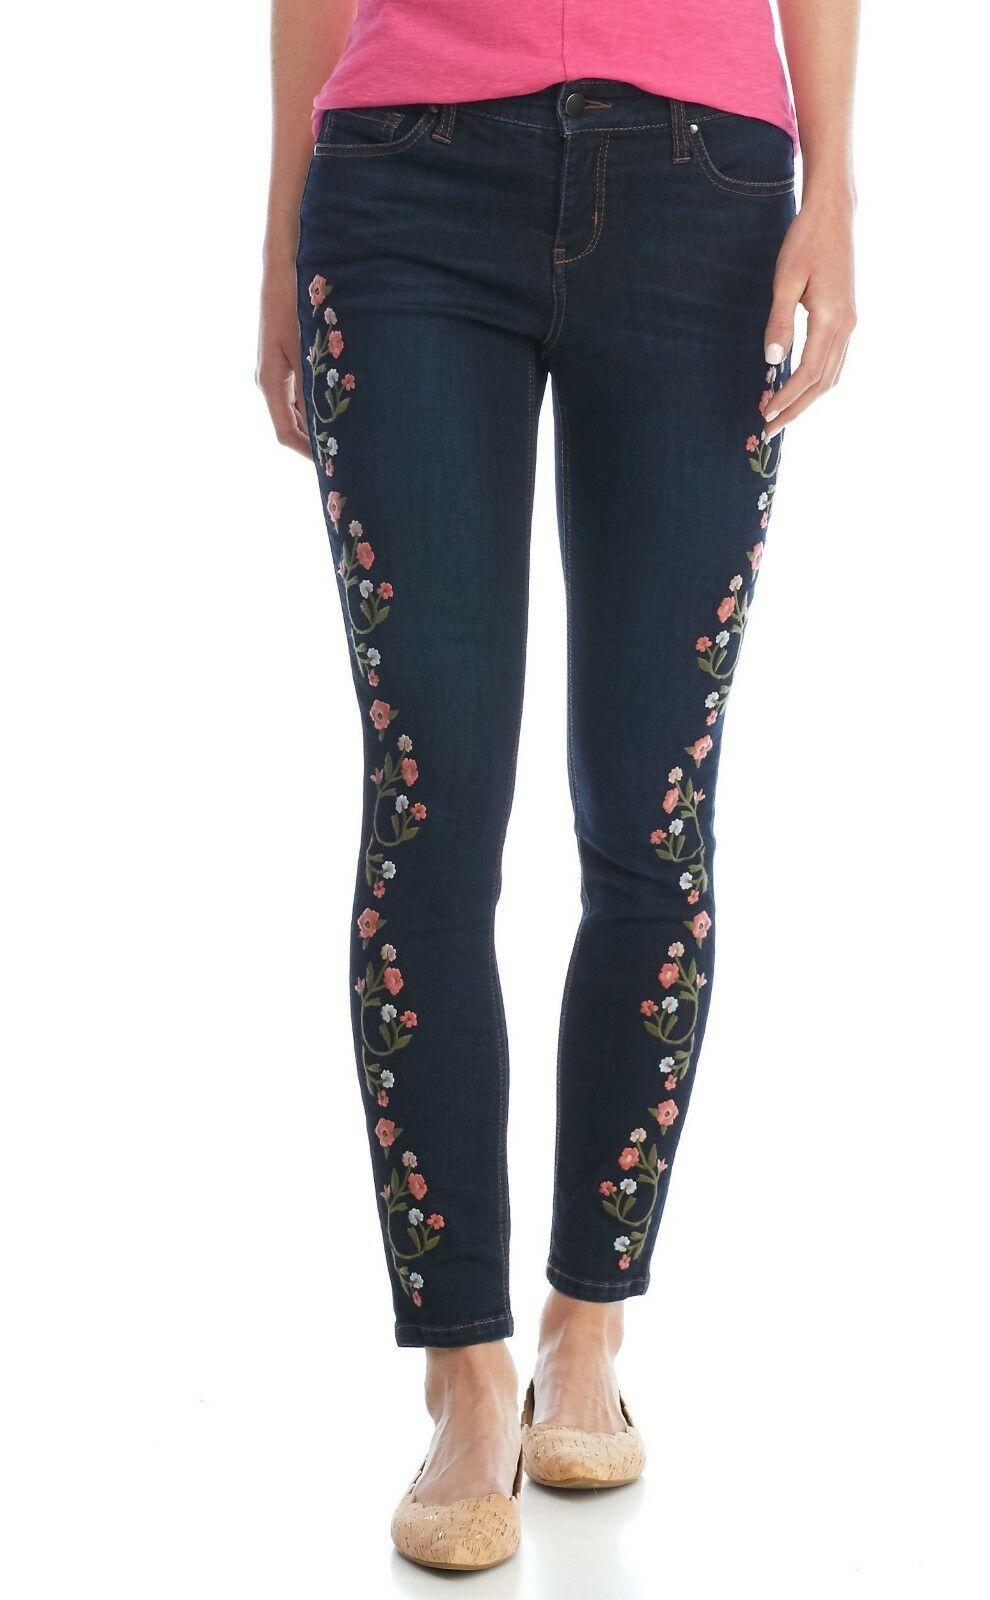 Crown & Ivy Dark Lagoon Wash Floral Embroidered Stretch Denim Skinny Jeans -  69